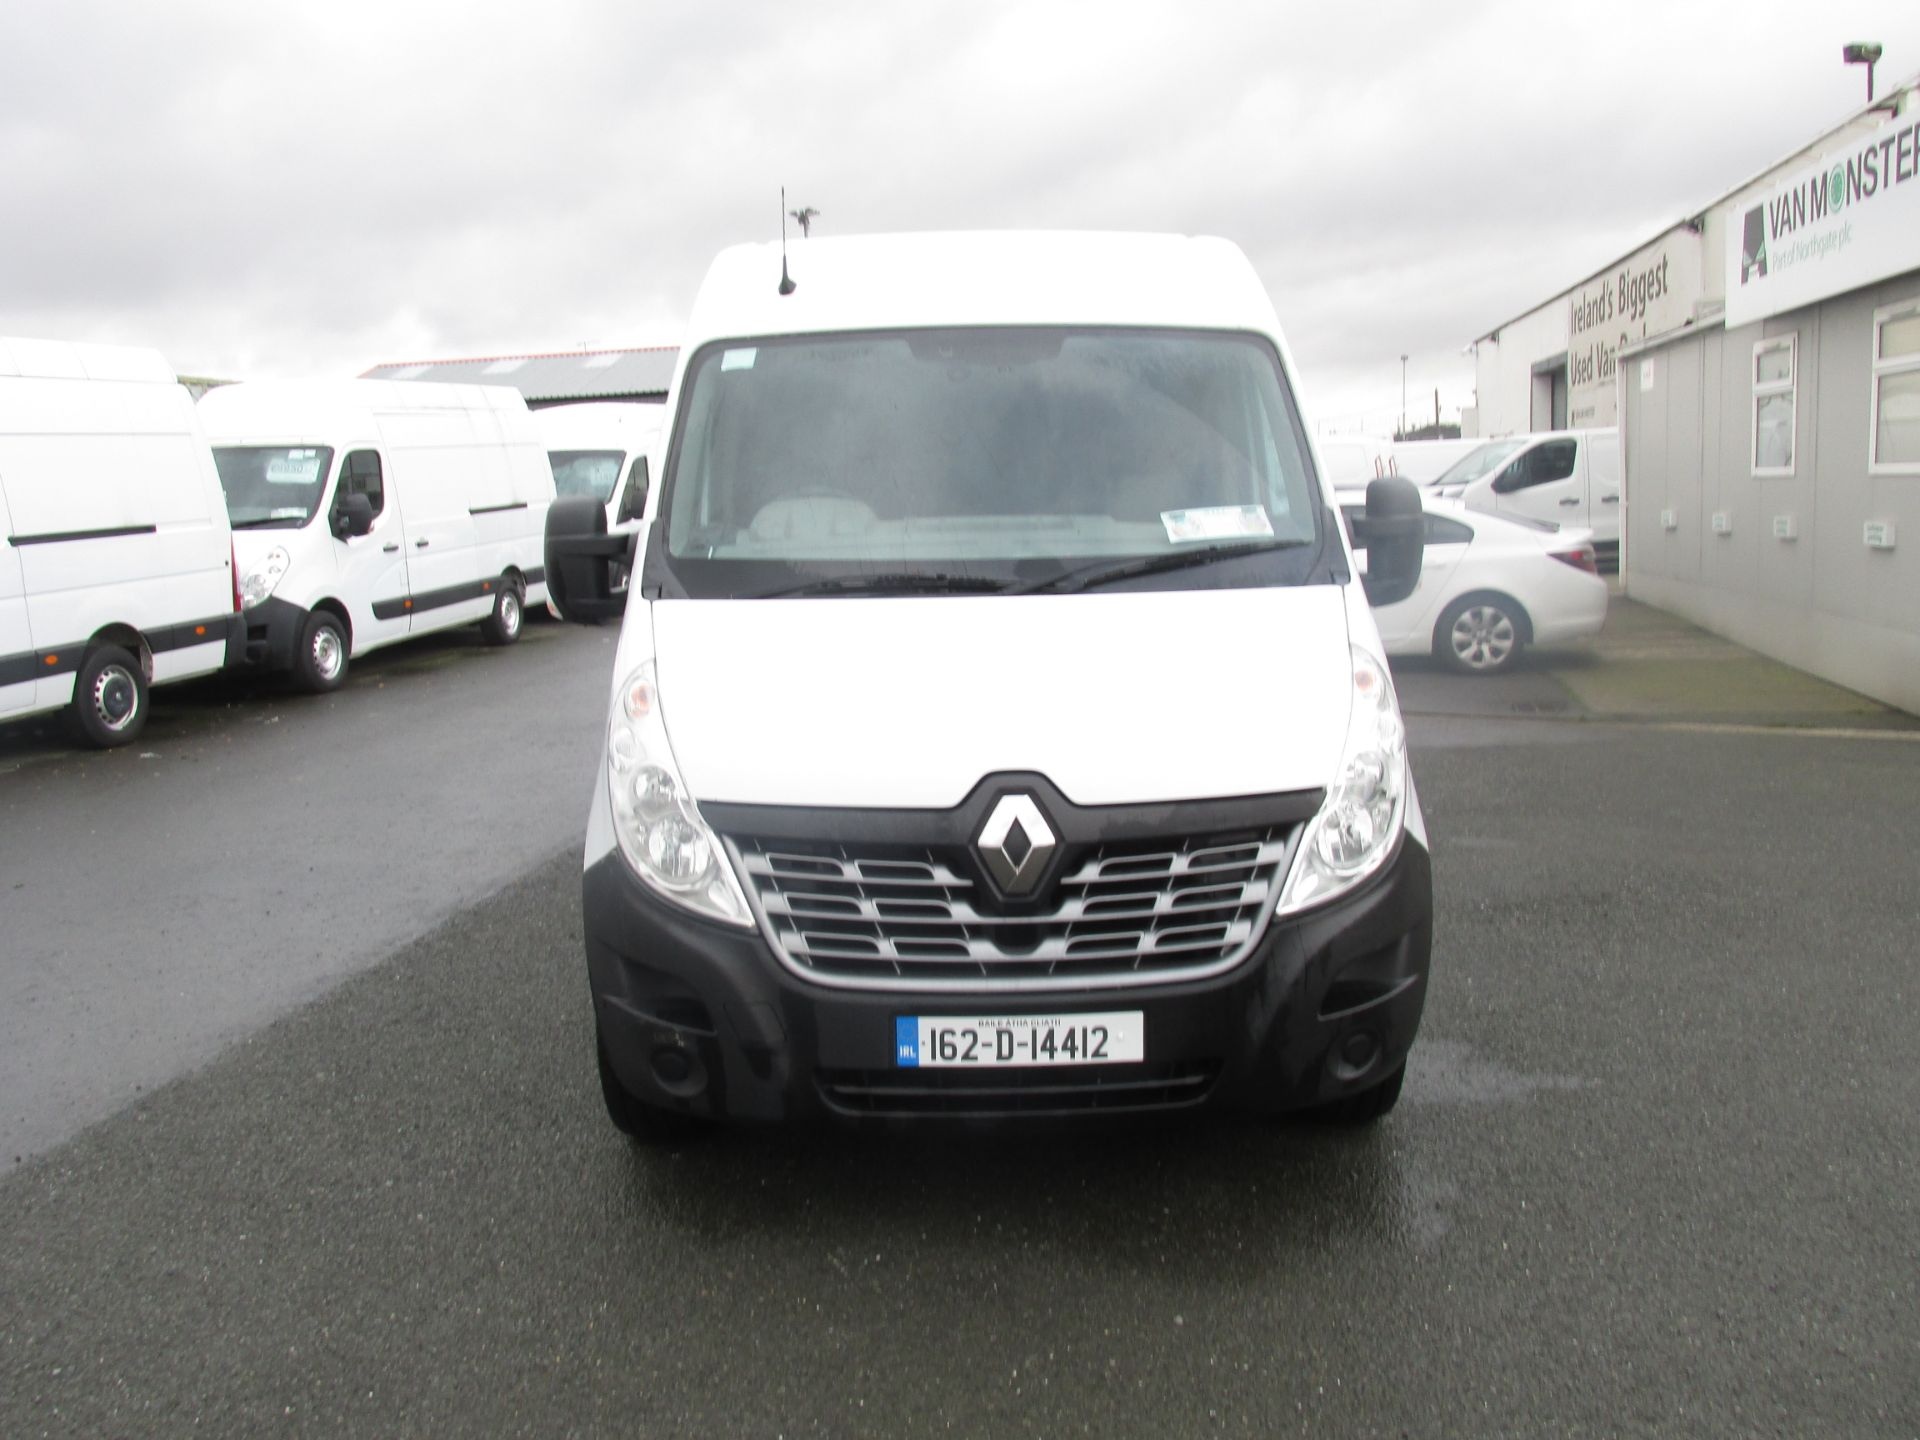 2016 Renault Master III FWD LM35 DCI 125 Business 3DR (162D14412) Image 2